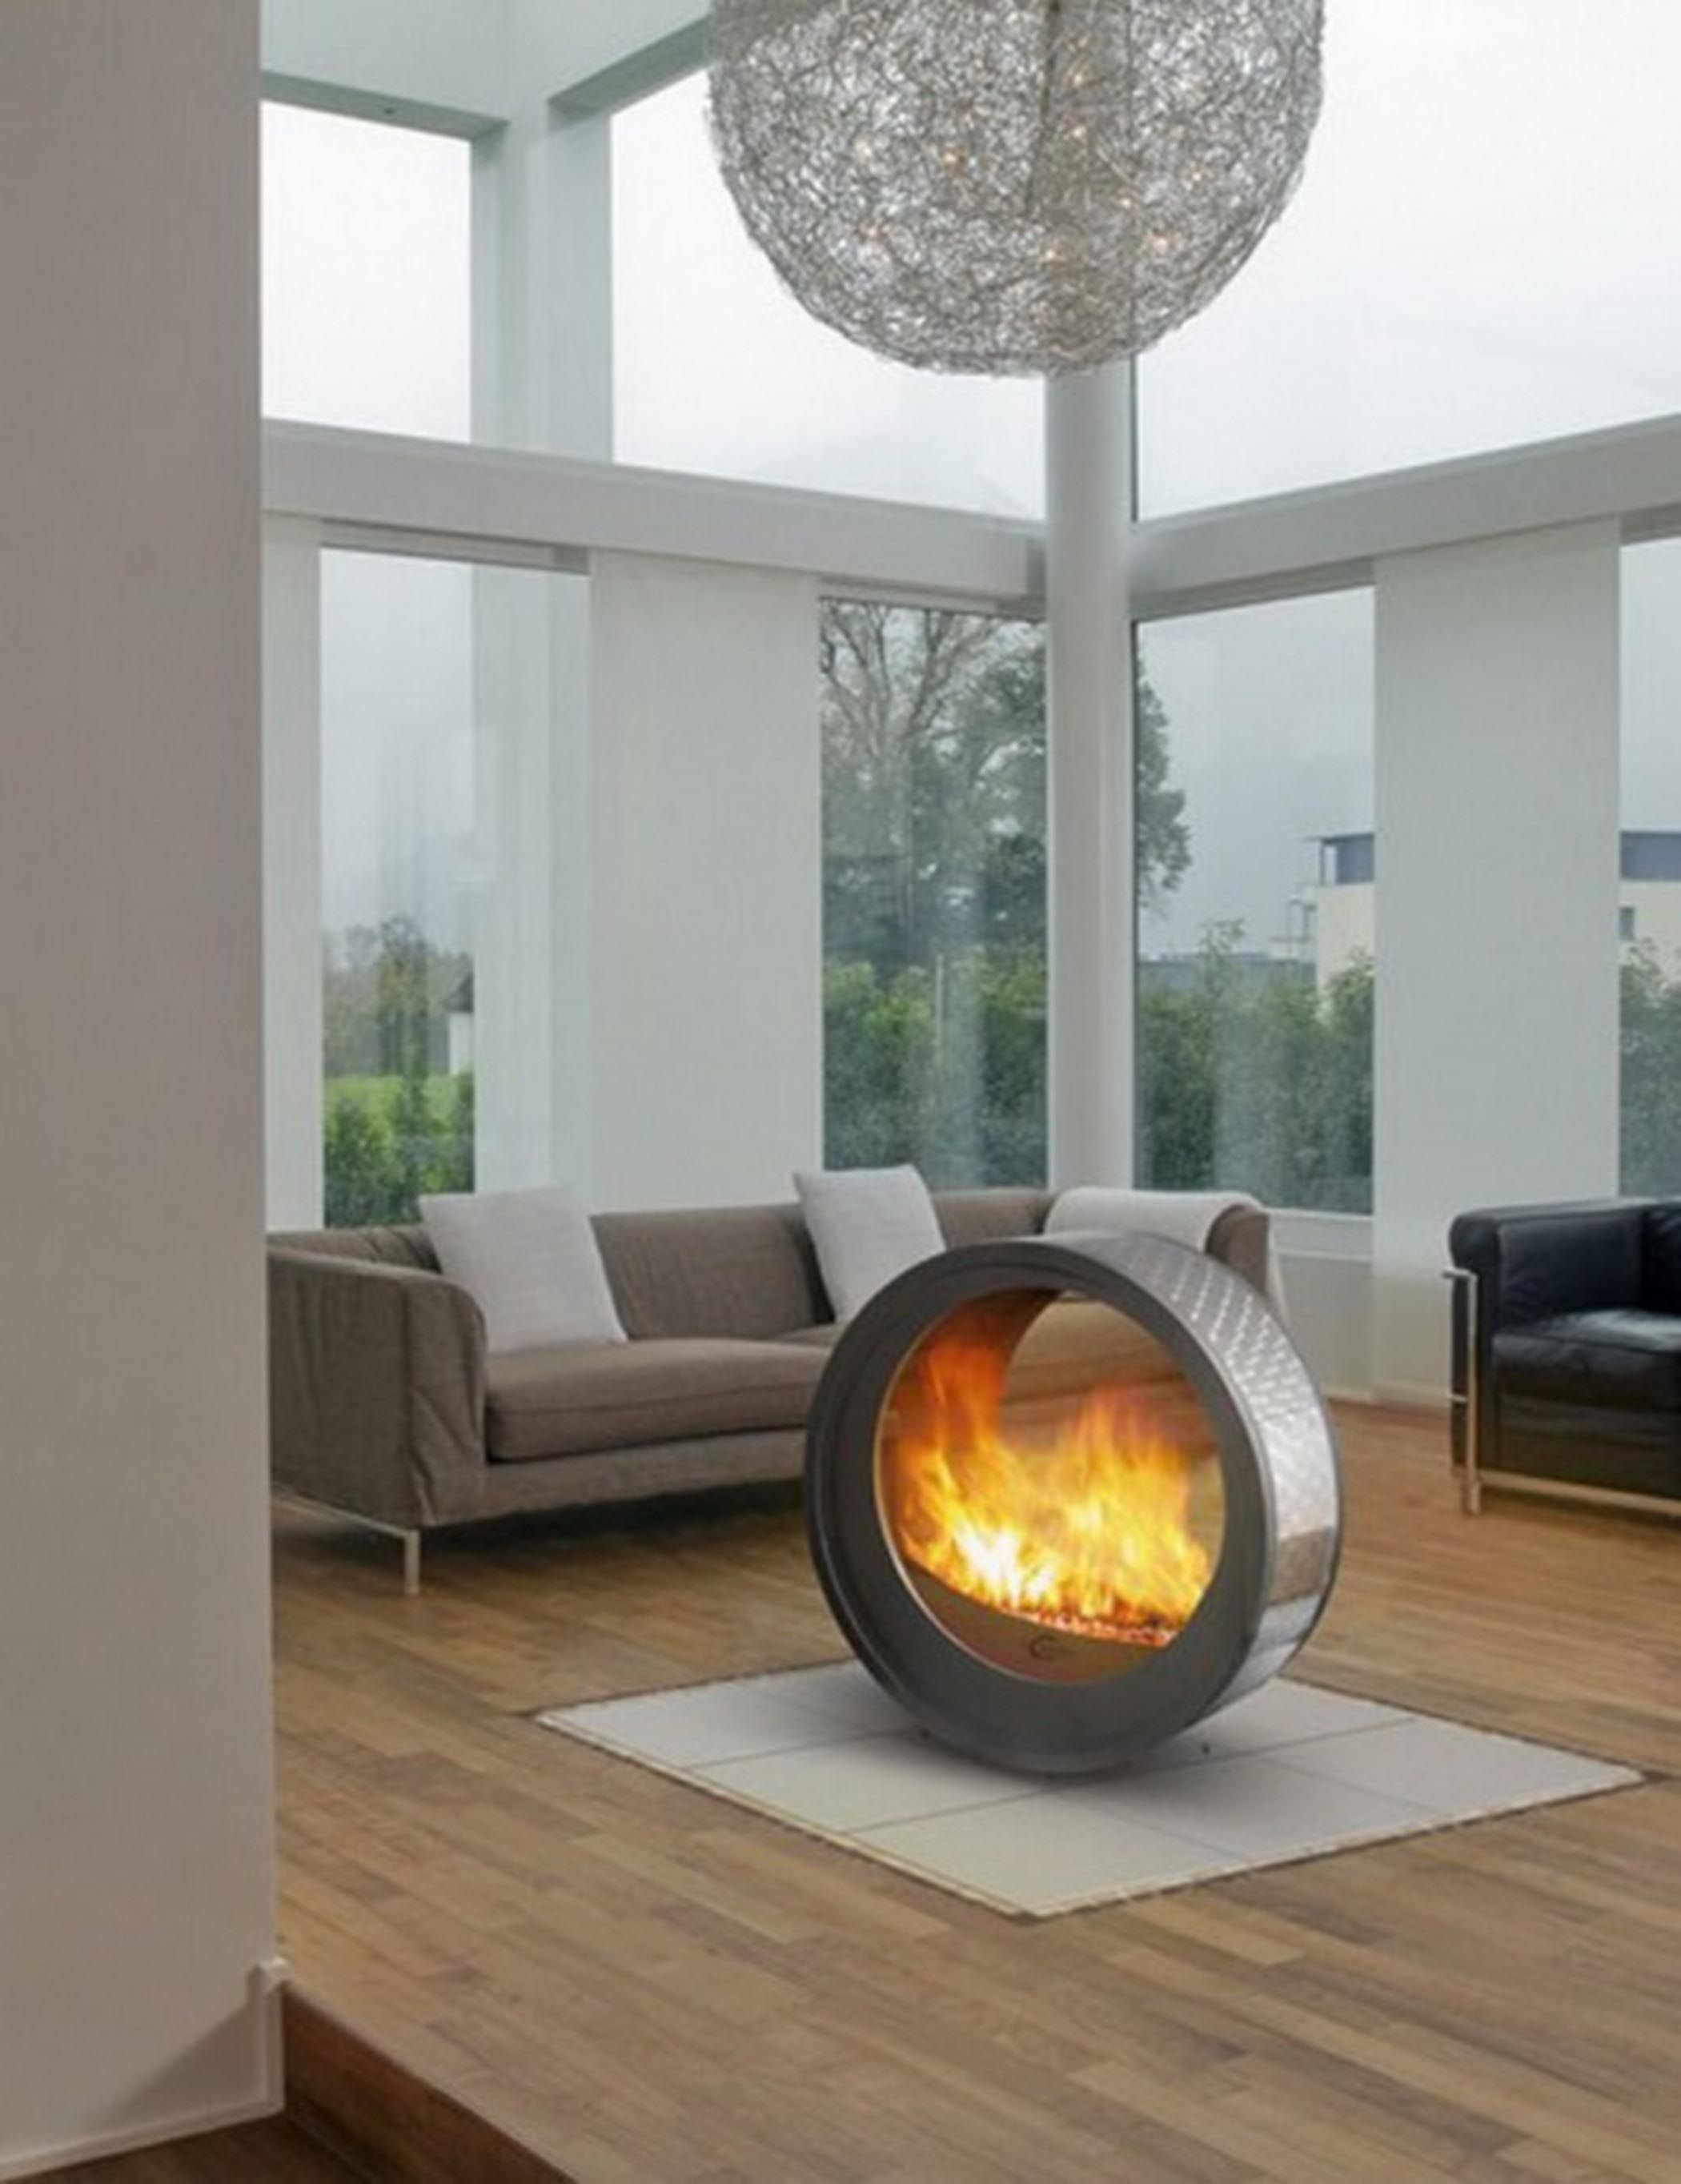 Indoor Gas Fire Pit | Fire Pit | Pinterest | Gas fire pits, Gas ...